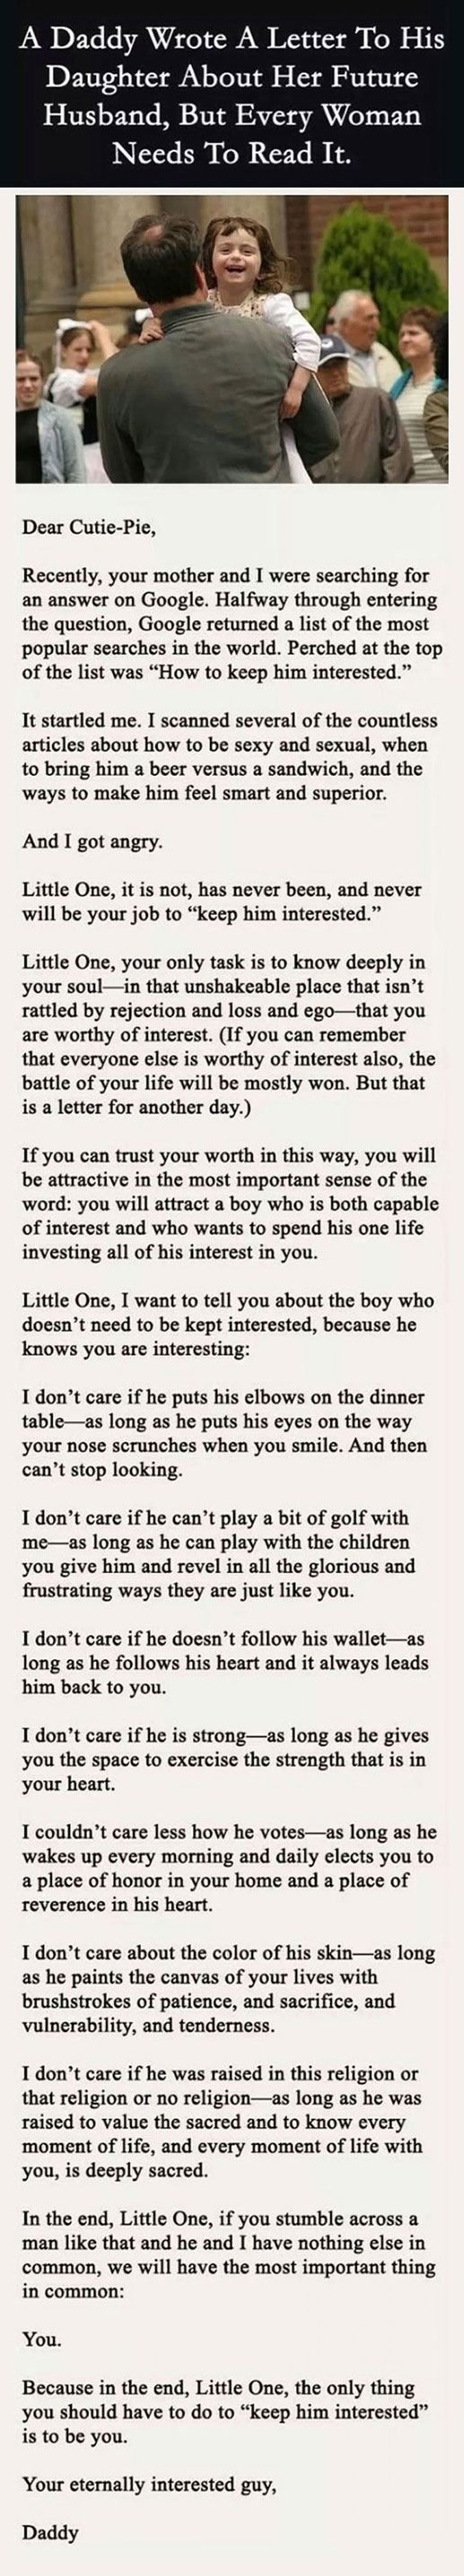 A letter from a father to his daughter.